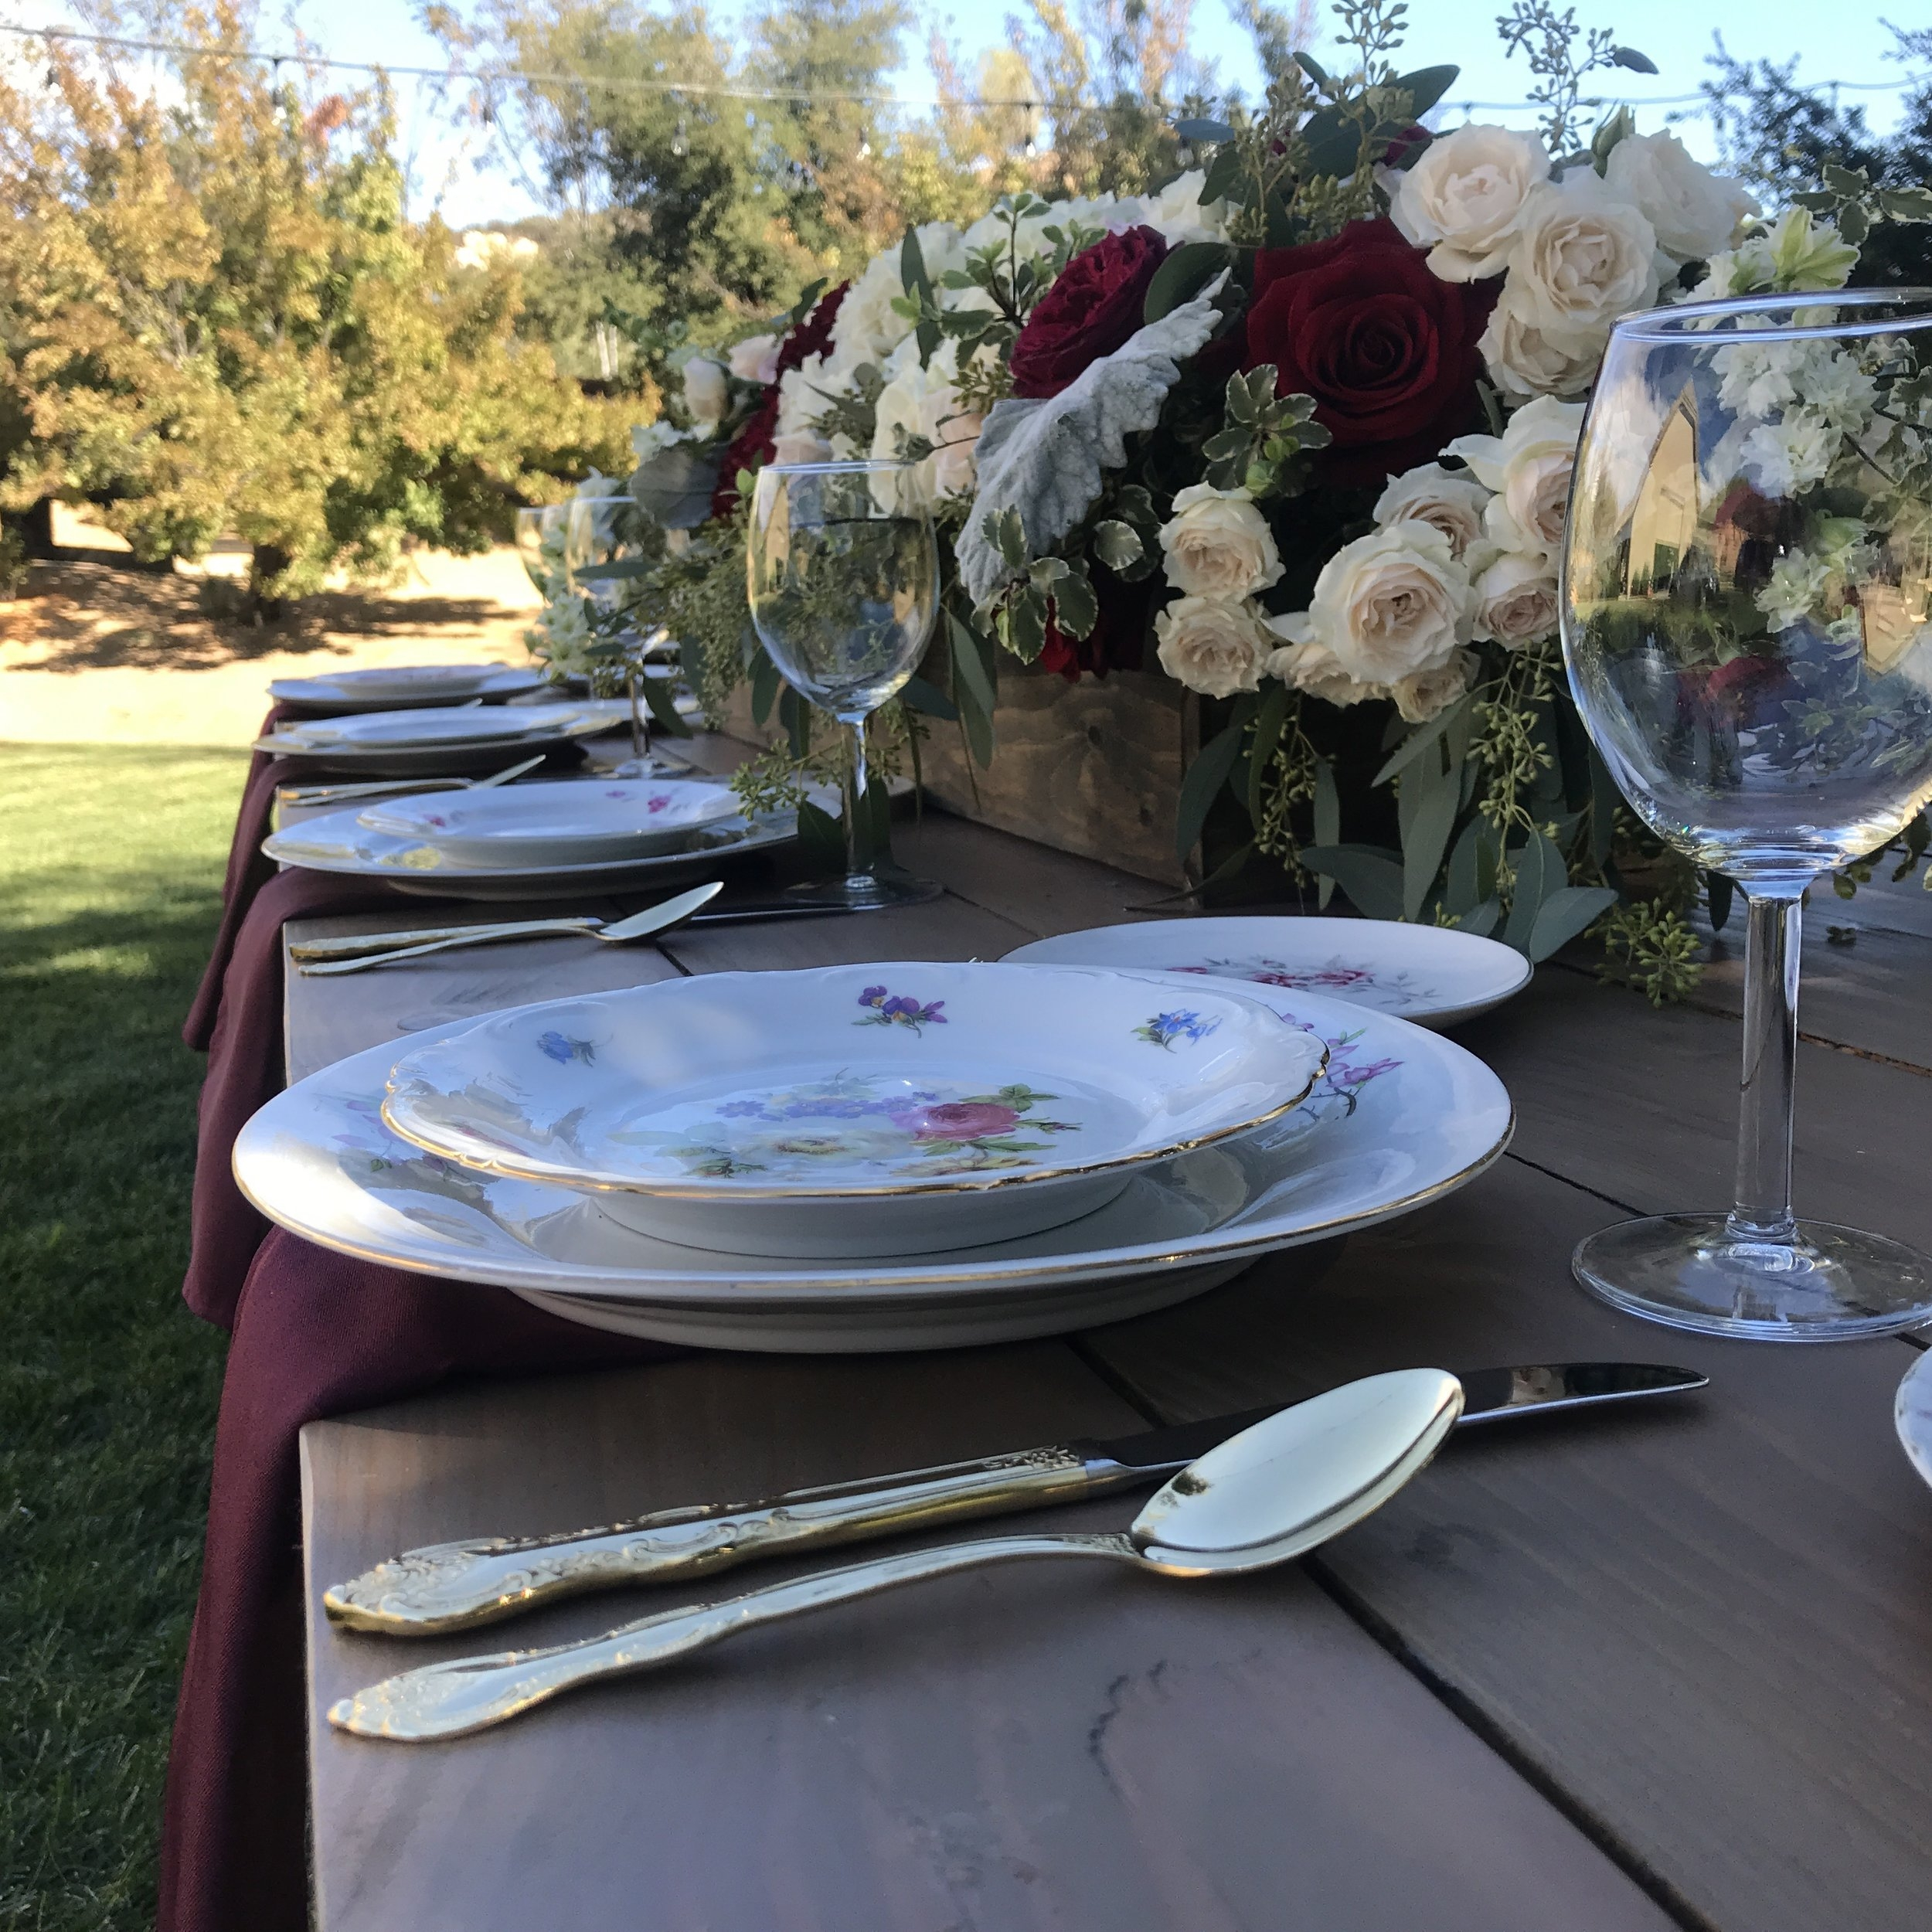 Close up of pink vintage china with red wine goblets and gold silverware. Large floral arrangement in a wooden planter box with beautiful pink roses. Temecula Valley rentals.